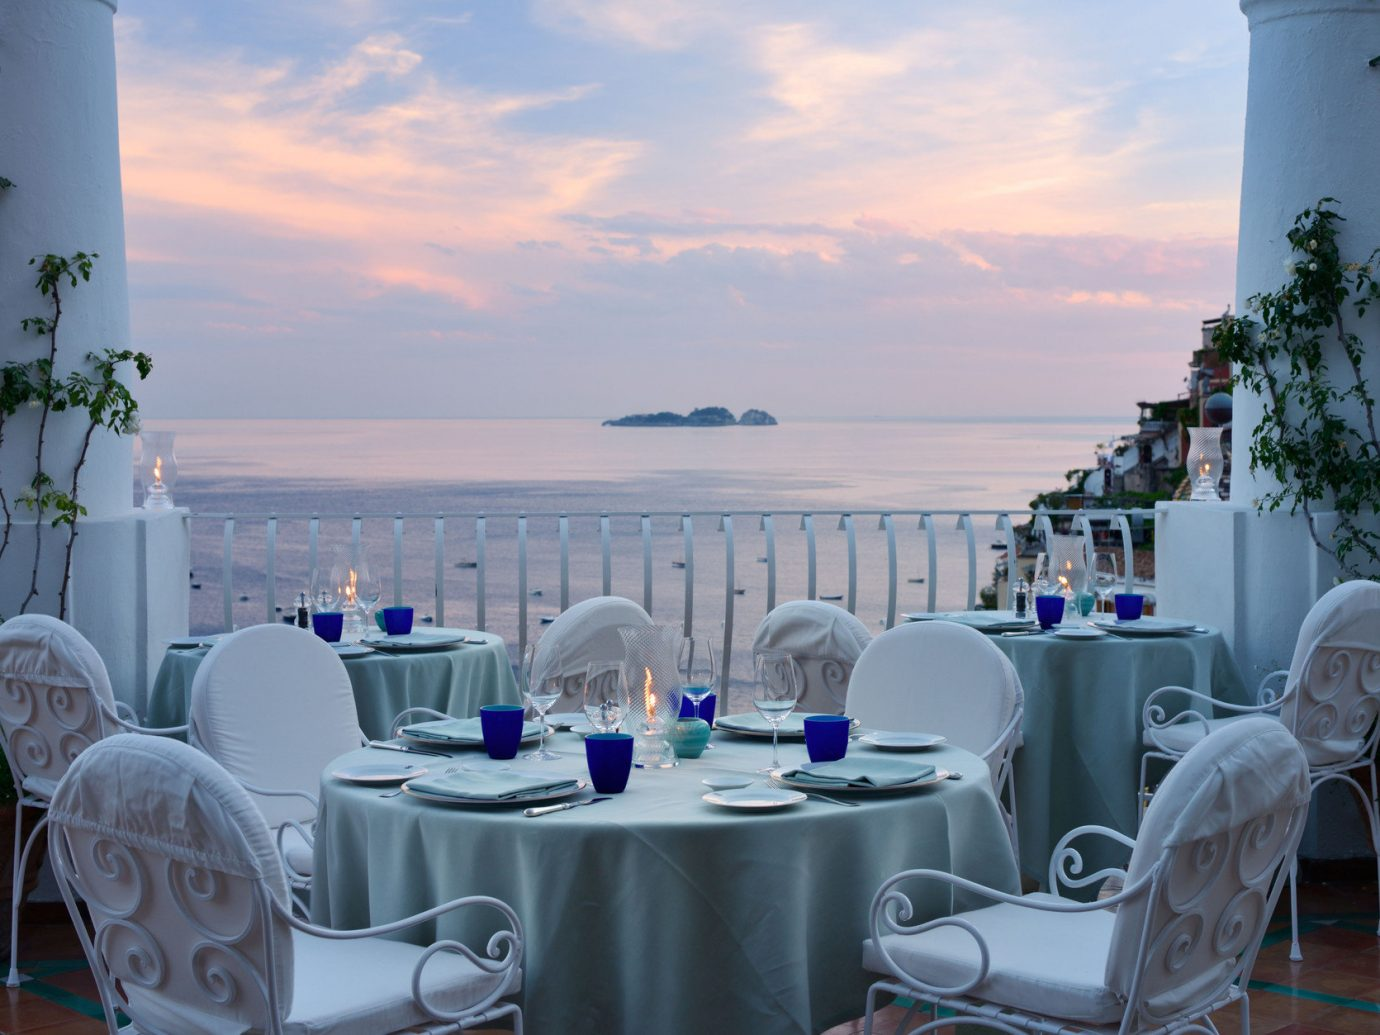 Outdoor dining at Le Sirenuse, Positano